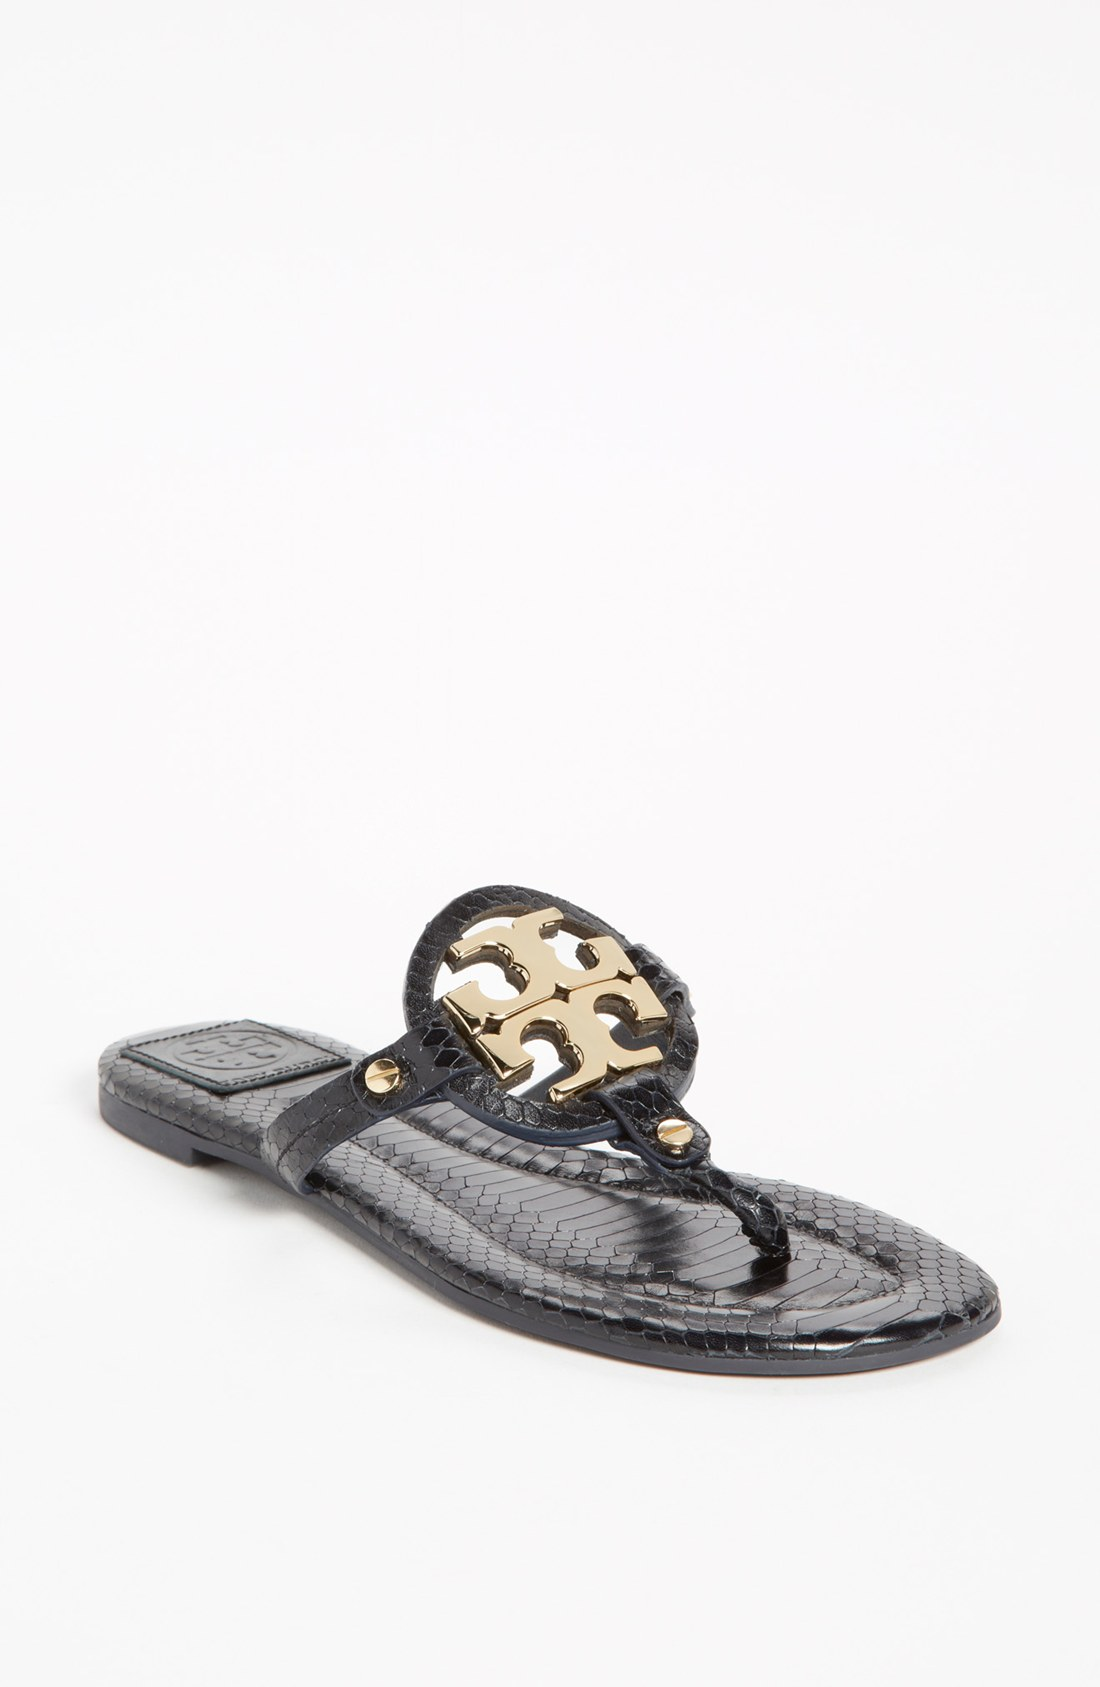 Buy Tory Burch Women's Metallic Miller 2 Cork Sandals - Natural/gold/gold. Similar products also available. SALE now on!Price: $